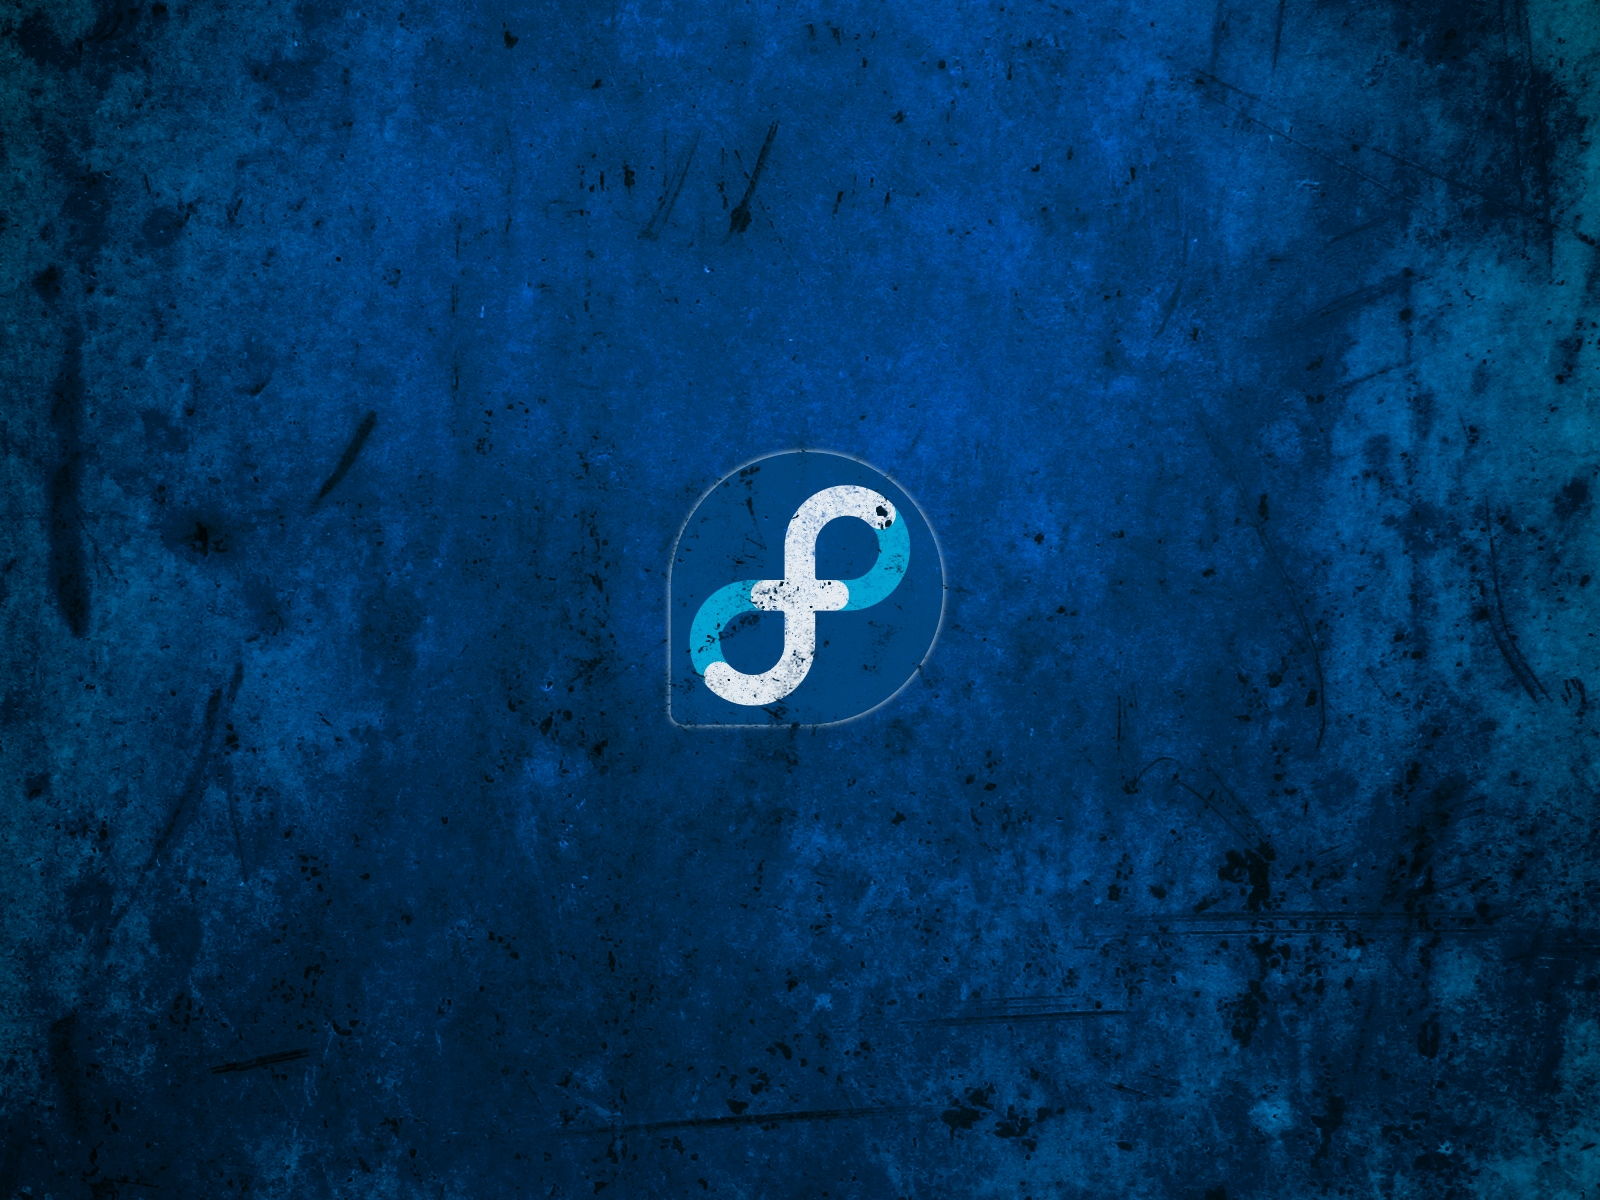 Related For Fedora Wallpapers. Fedora